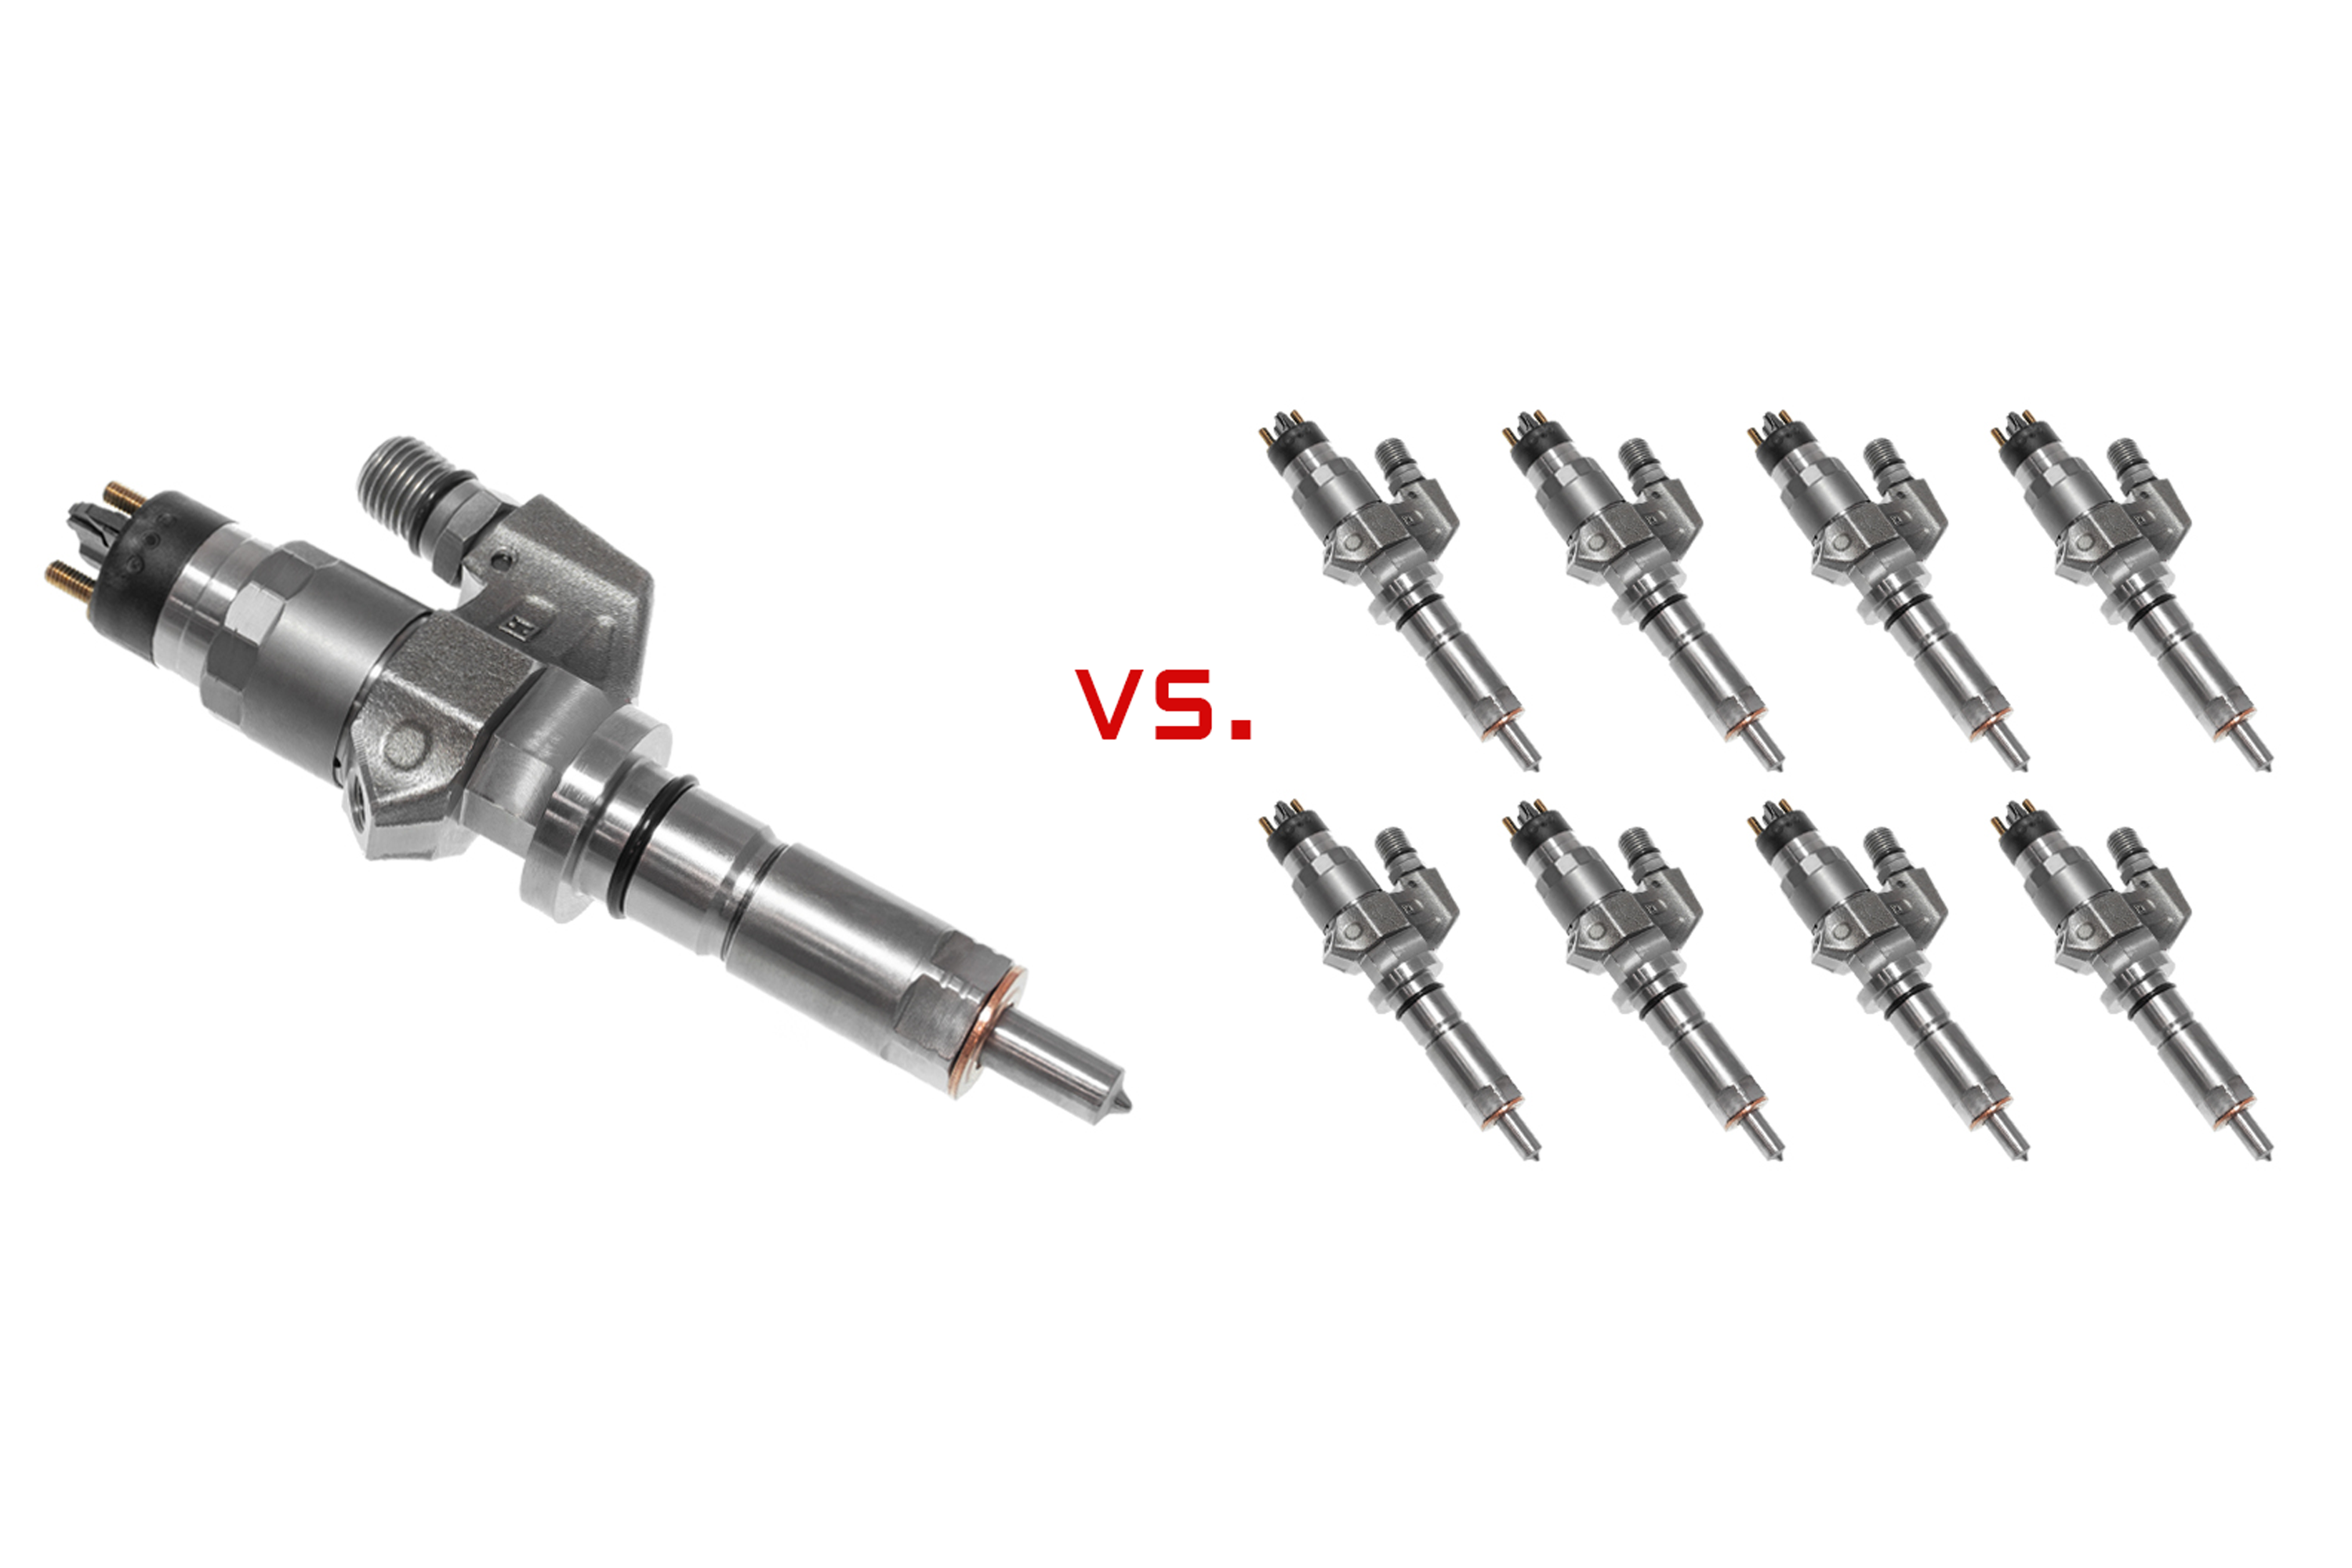 Buying Single Diesel Injectors, or a Full Set?